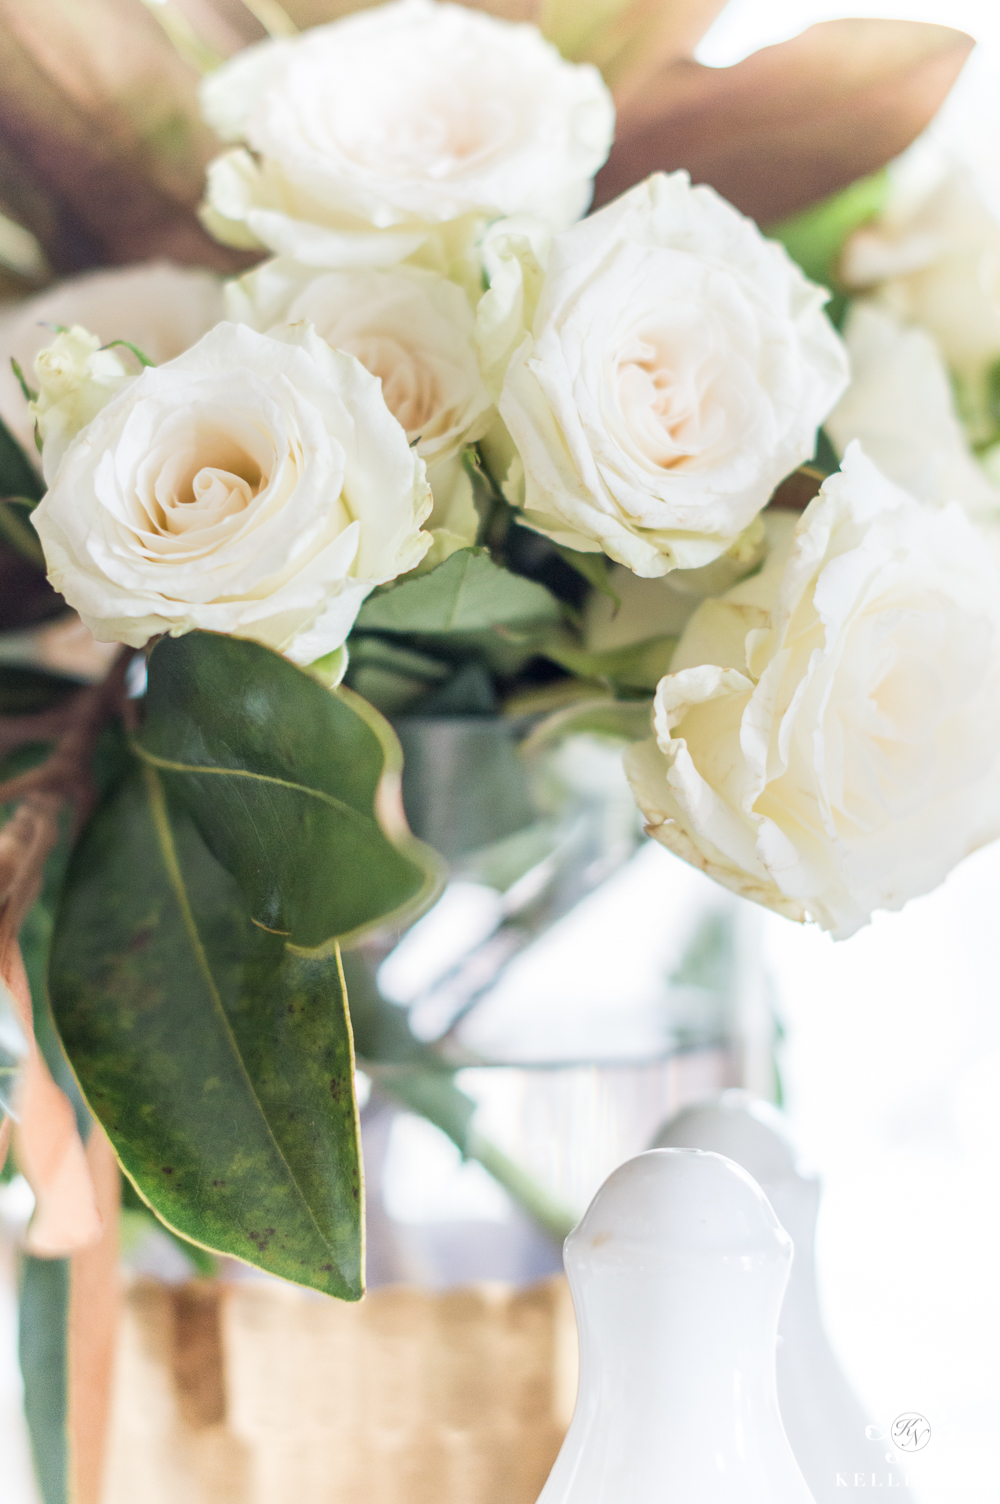 Centerpiece with white florals for Galentine's luncheon